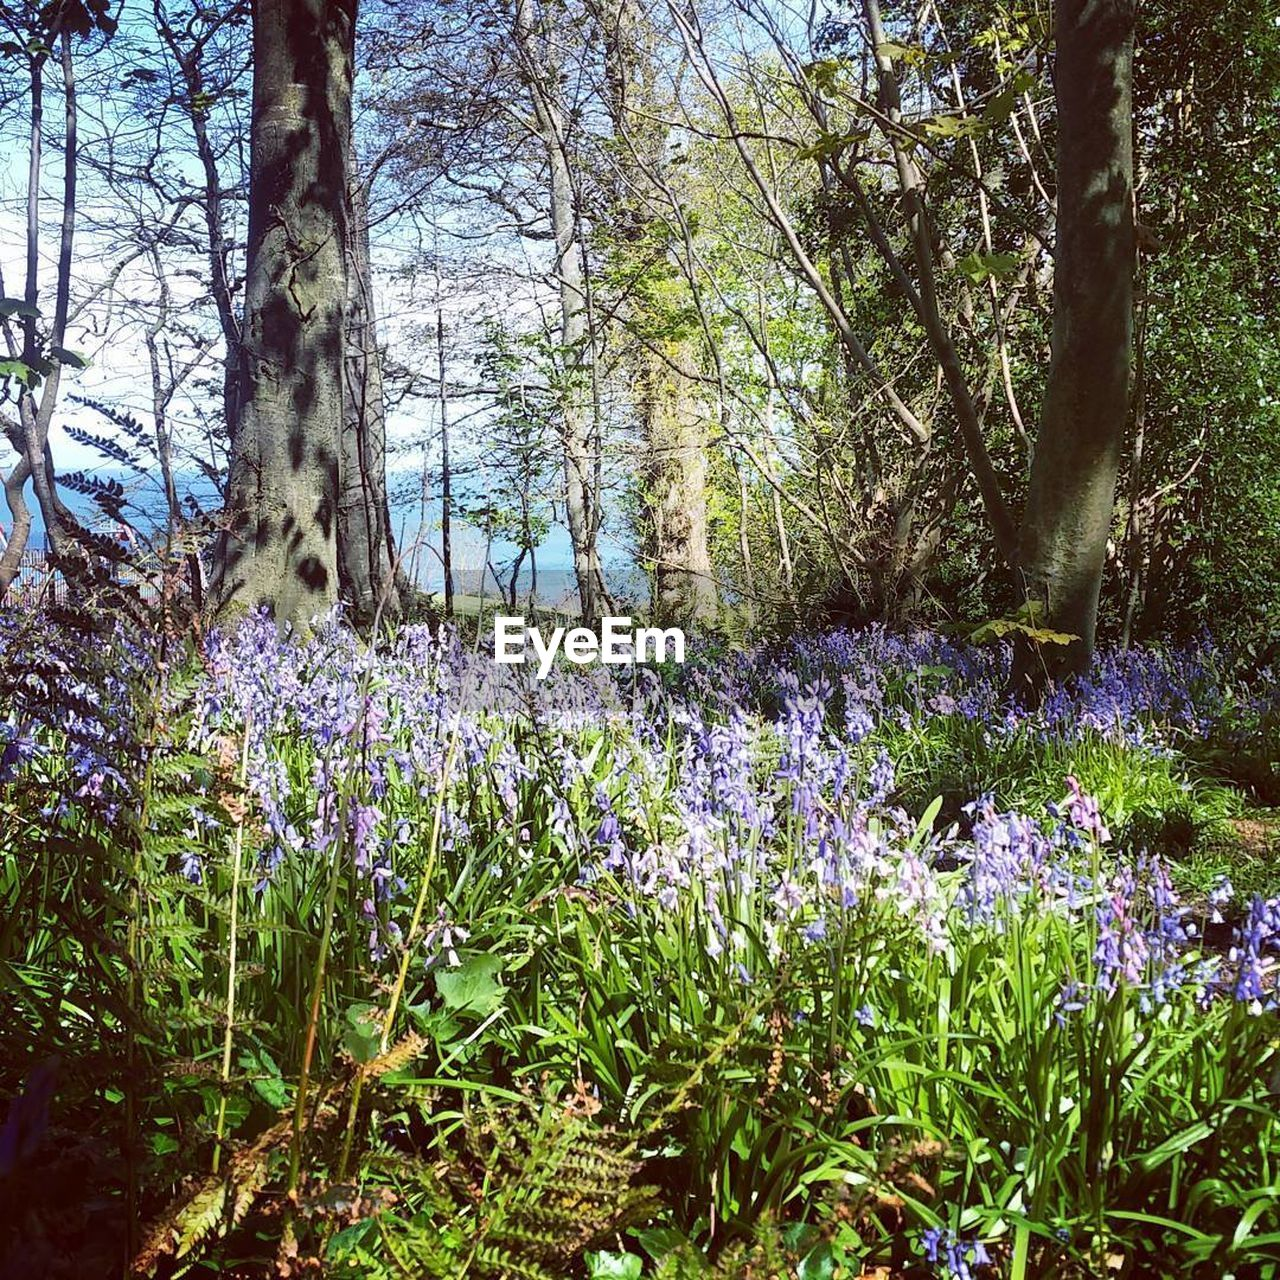 growth, nature, tree, flower, beauty in nature, tranquility, day, tranquil scene, tree trunk, plant, forest, no people, outdoors, scenics, fragility, landscape, branch, grass, freshness, crocus